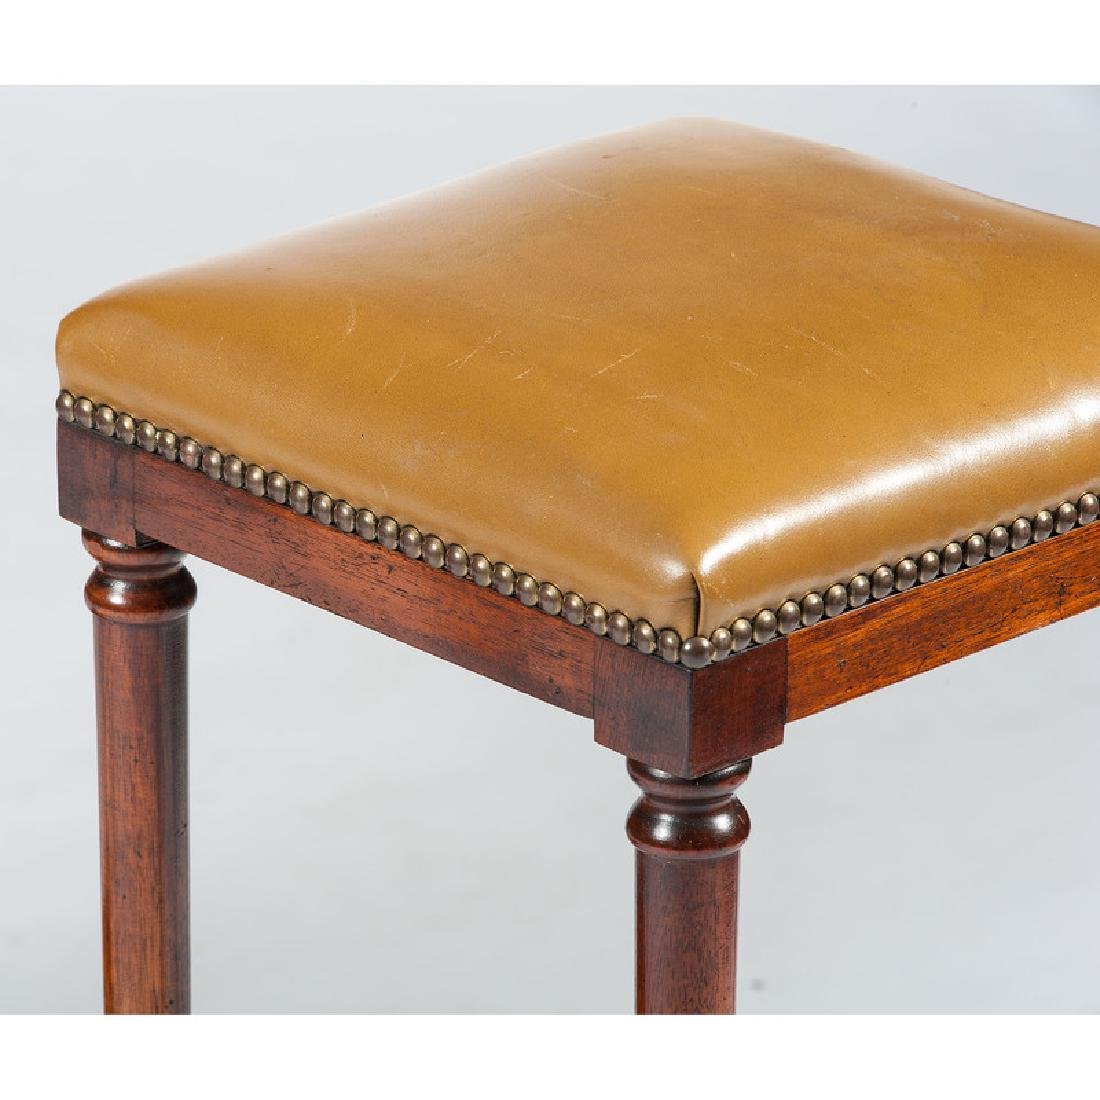 English Mahogany Desk with Stool - 2